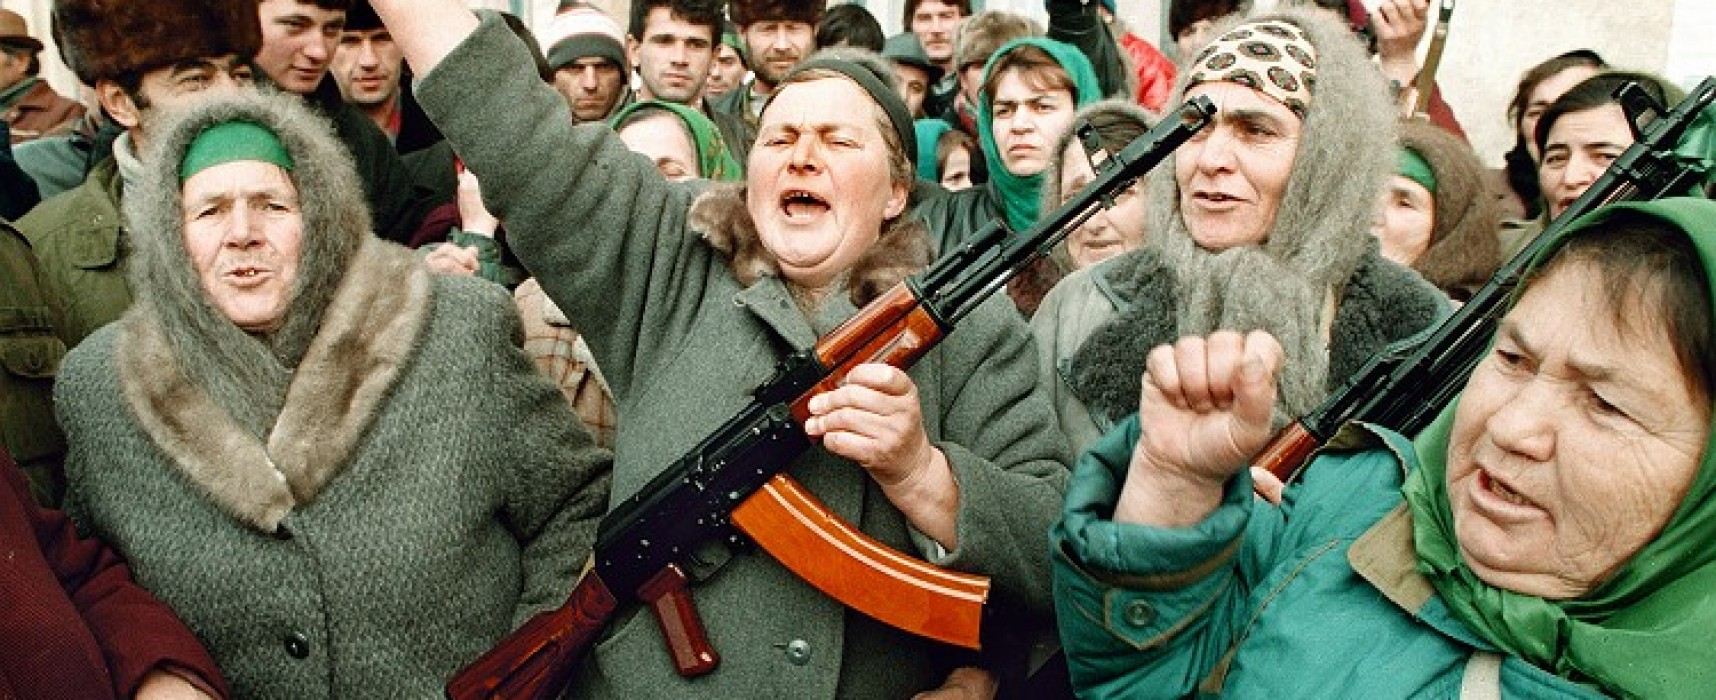 Photo from Chechnya Dated 1994 is Presented as Depicting Actual Events in Rostov